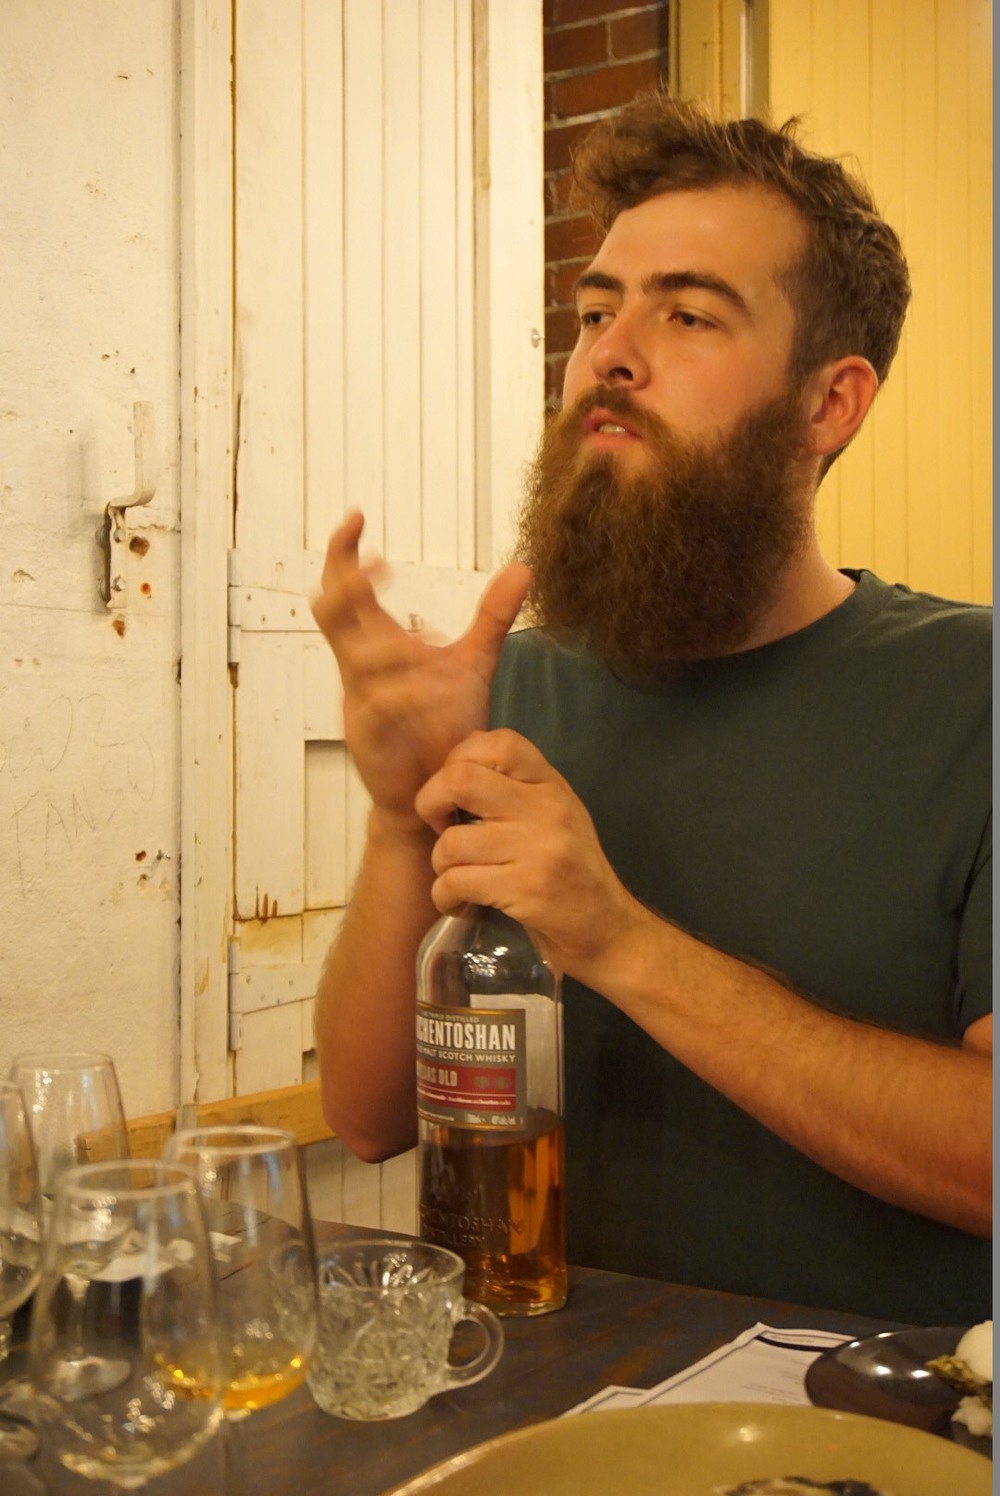 Bill Bewsher was explaining about Auchentoshan